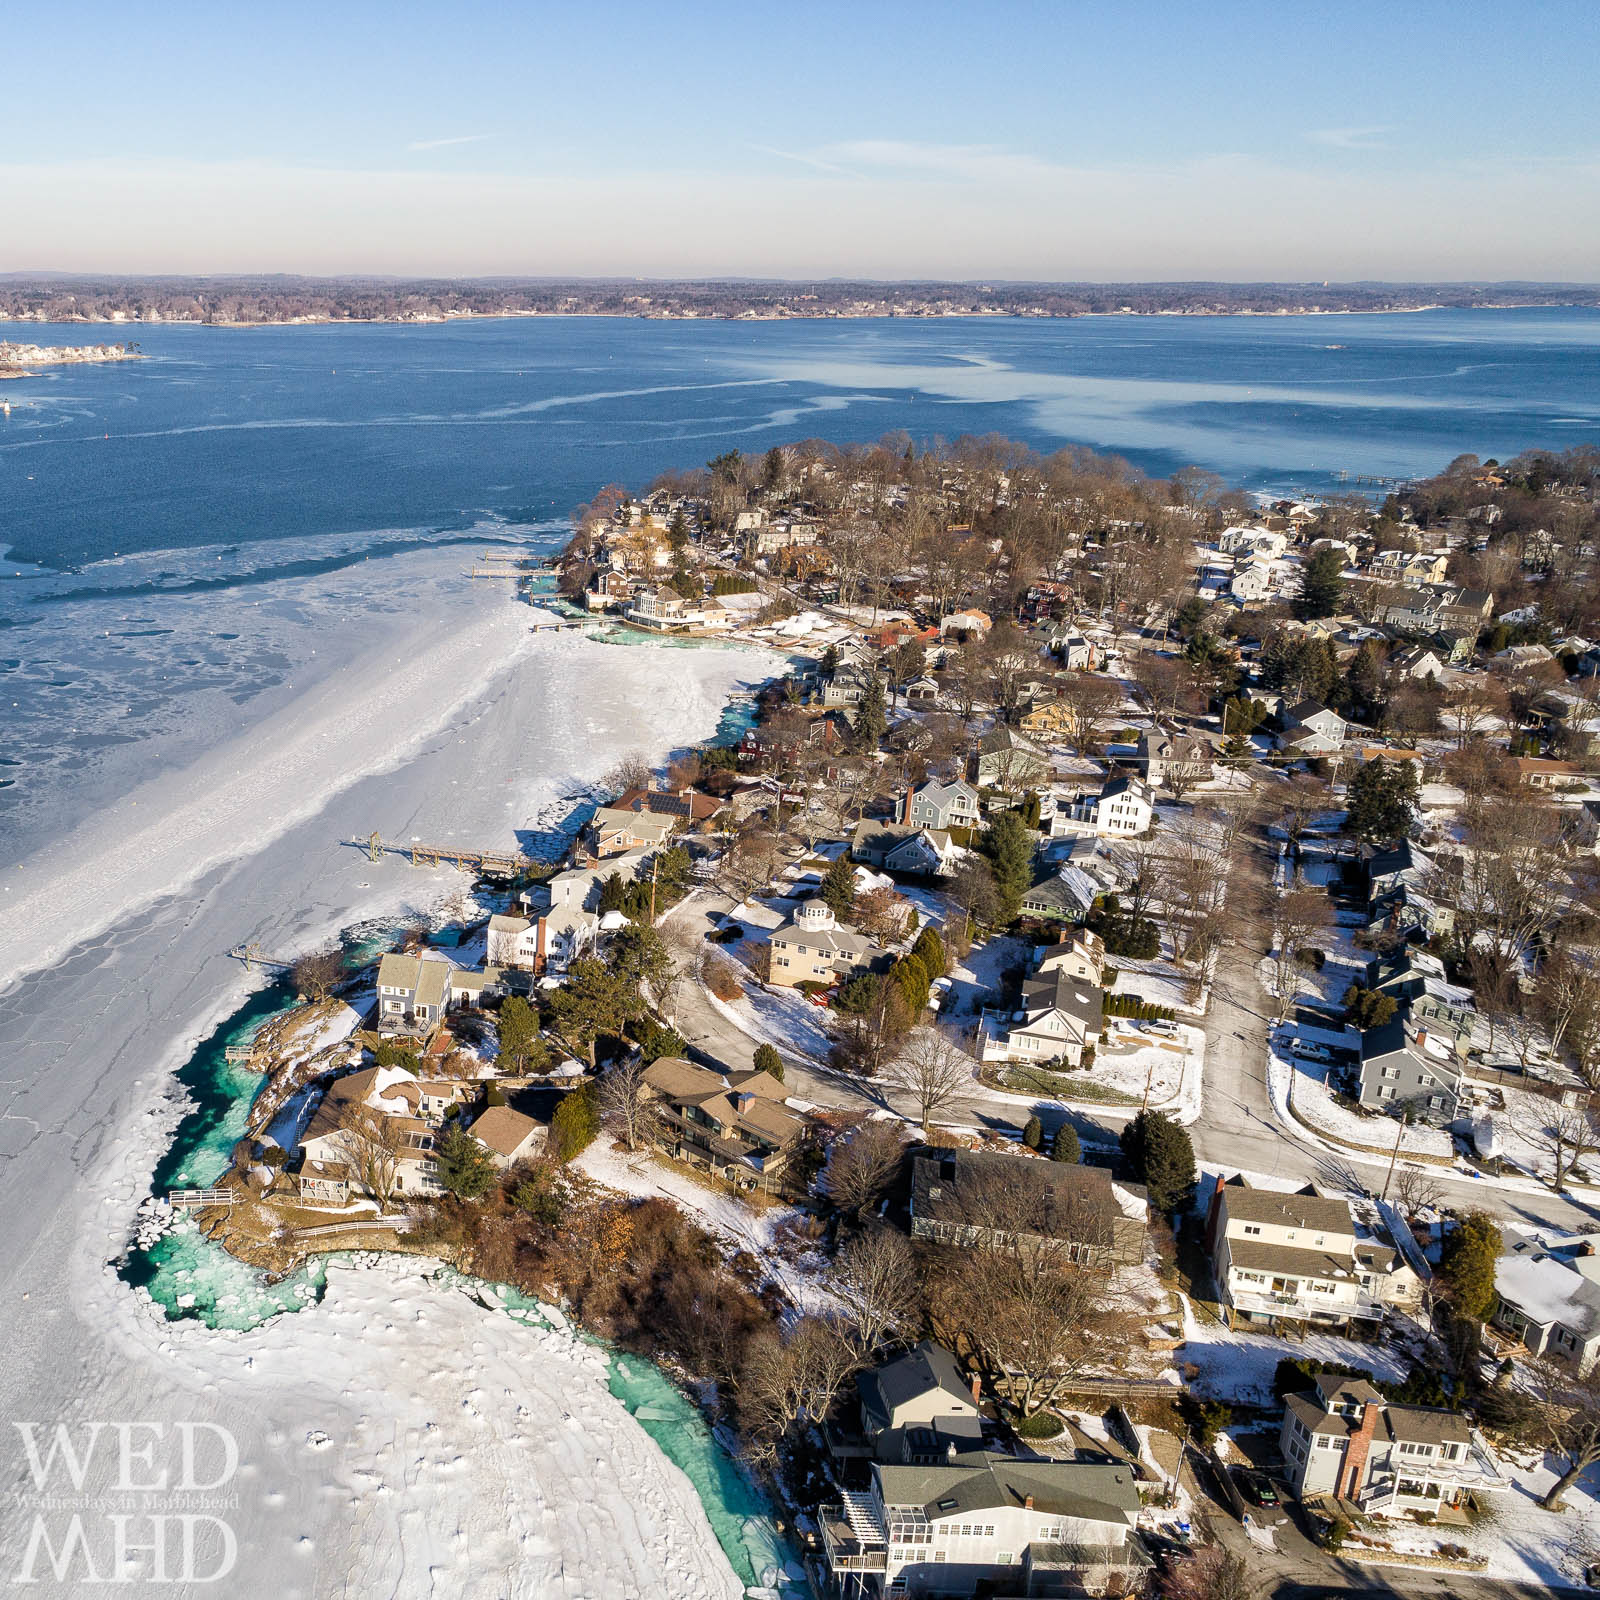 A Spring thaw is finally upon us and that put me in mind of this image of Folger Point and Naugus Head surrounded by ice